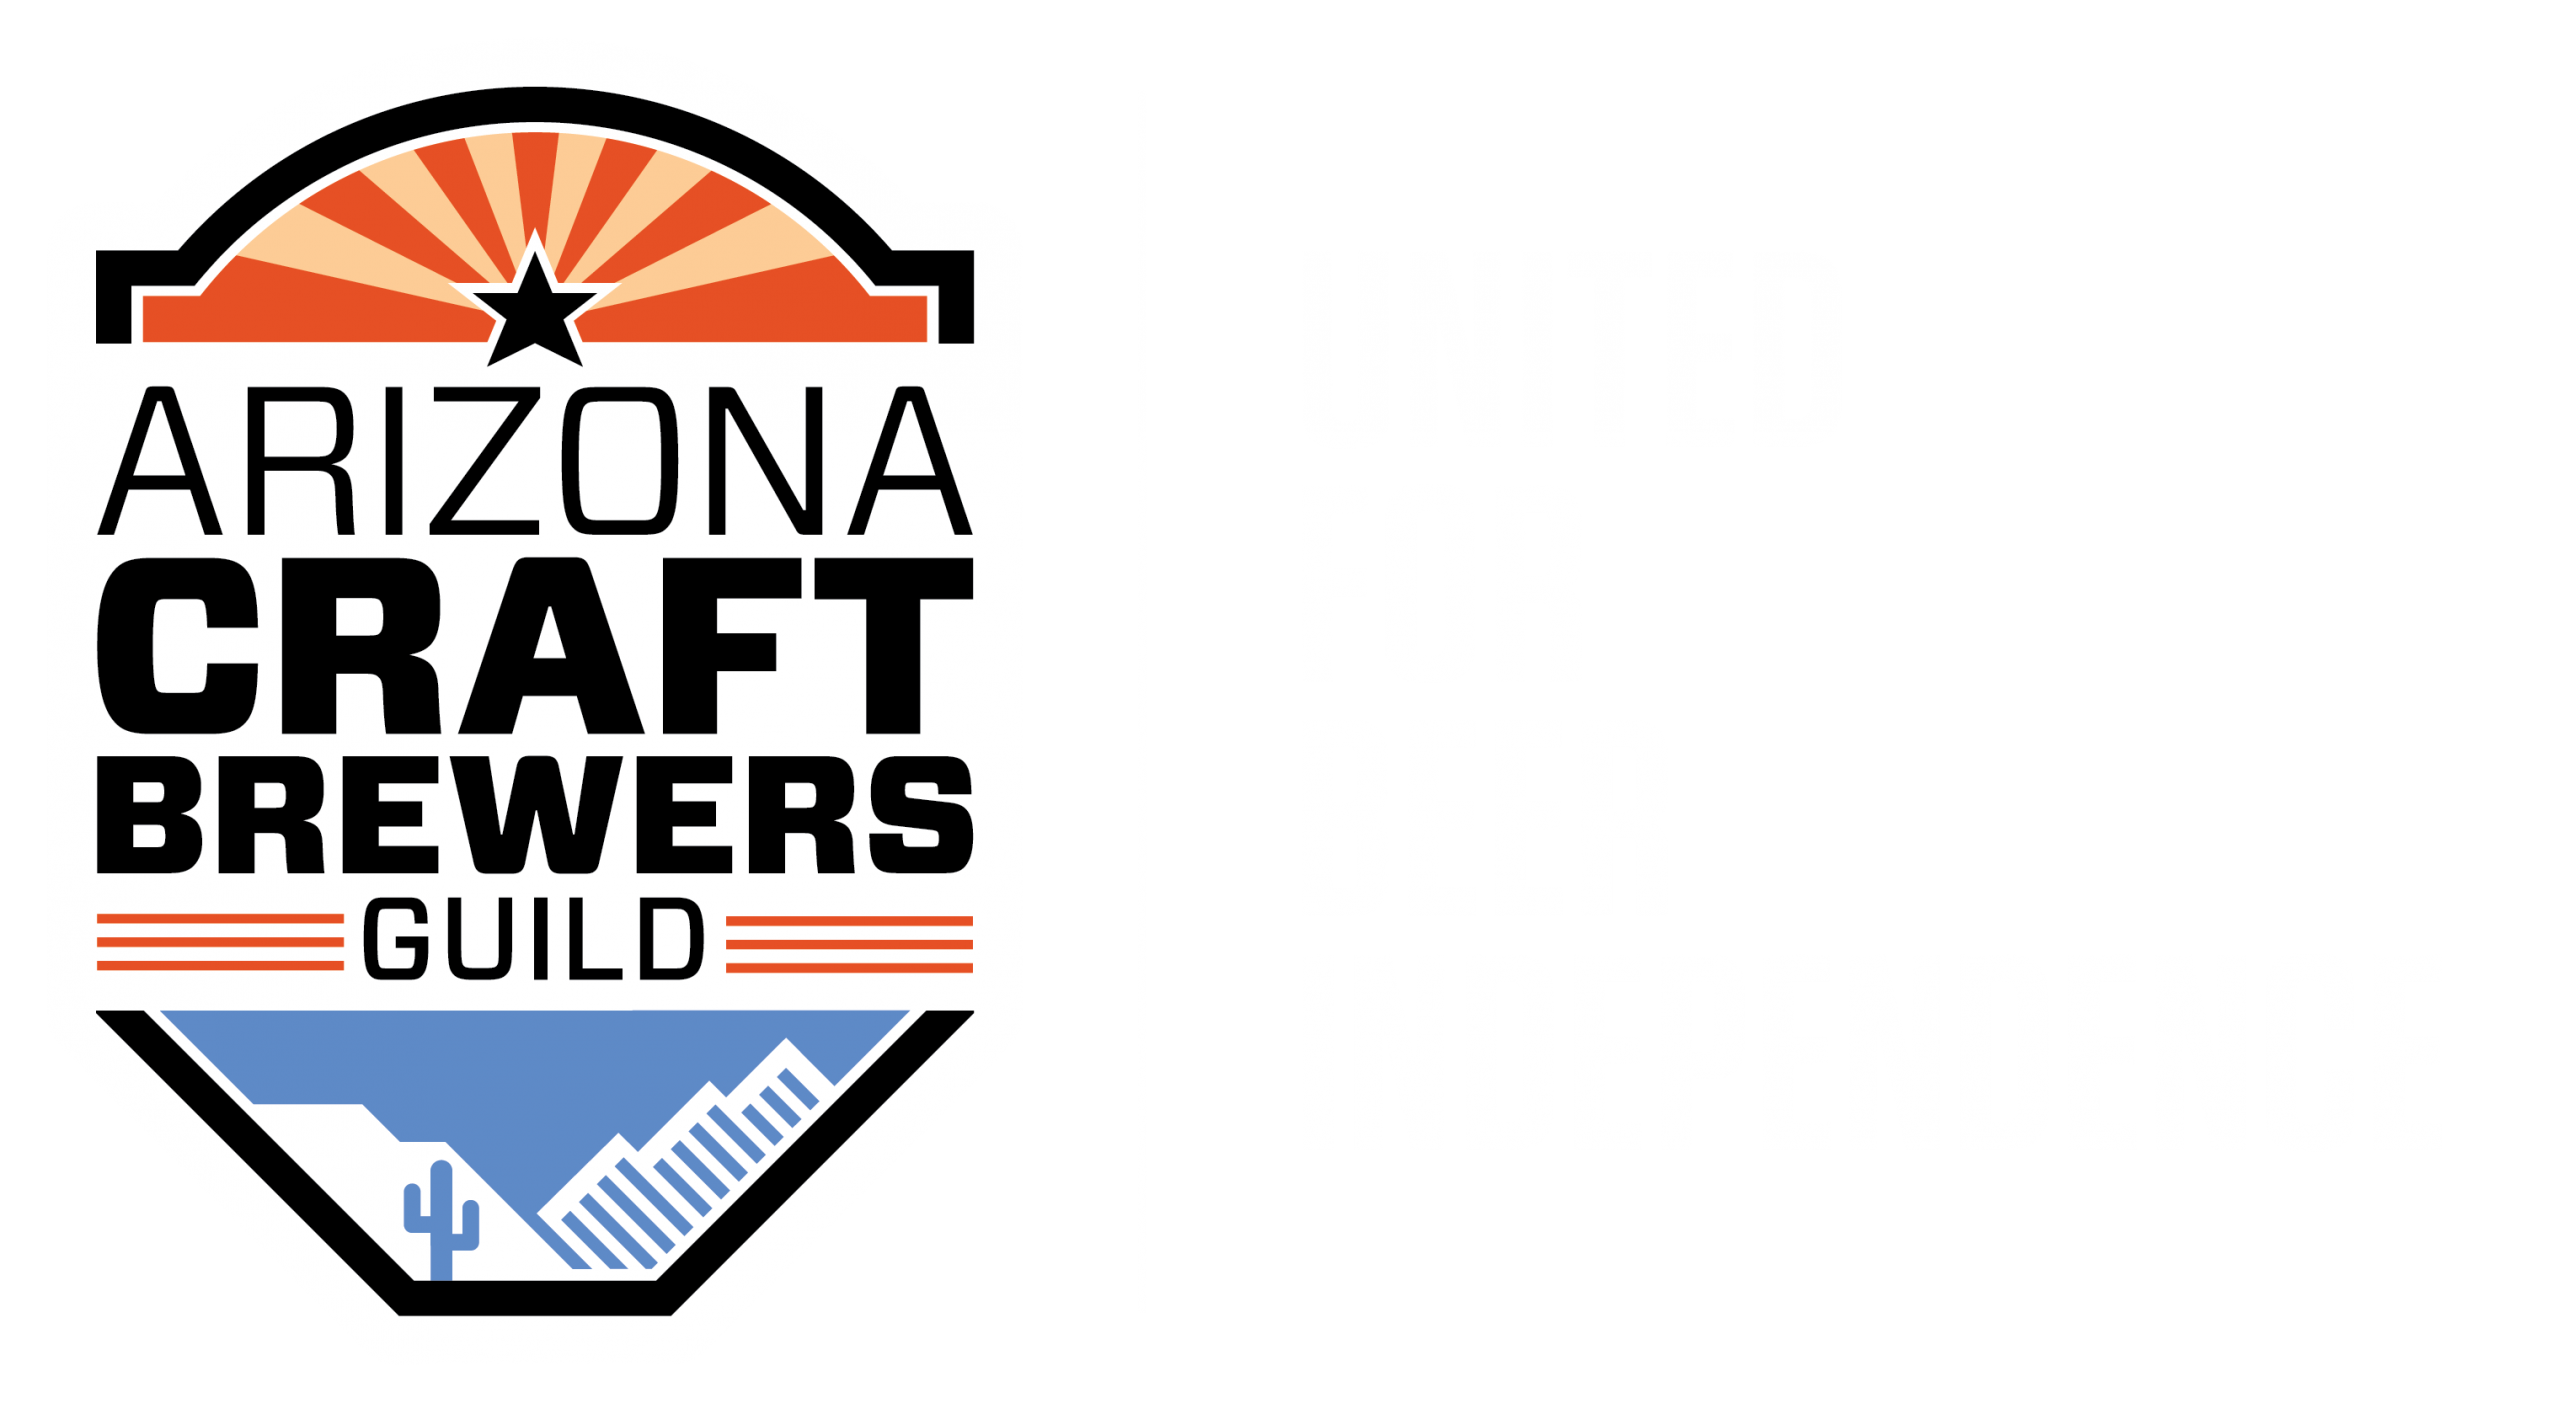 Downtown Phoenix Inc. | Arizona Craft Brewers Guild